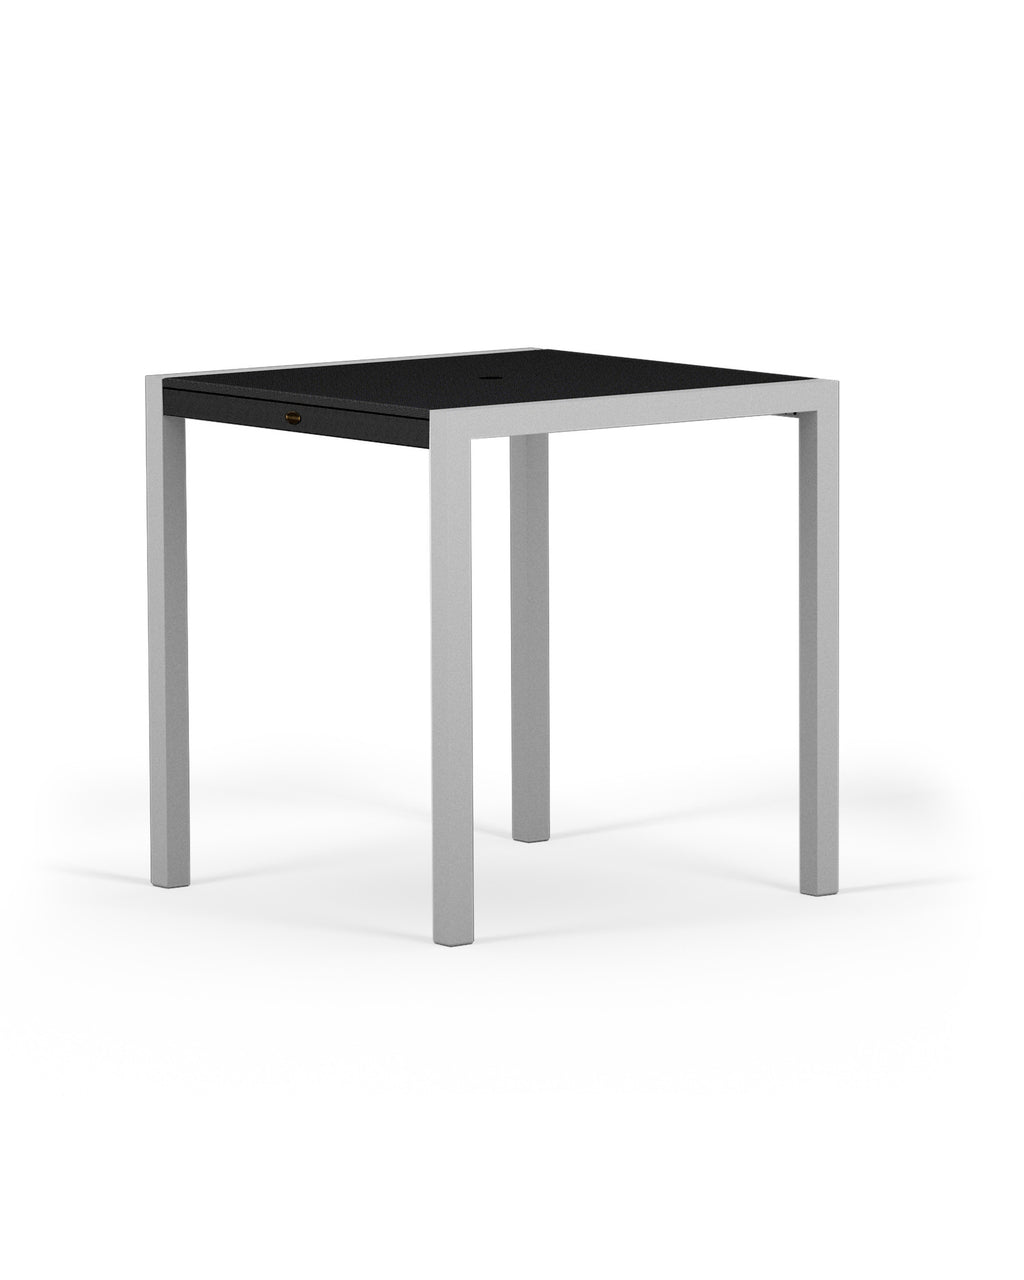 "8121-11MBL MOD SOLID 36"" Counter Table in Textured Silver and Black"